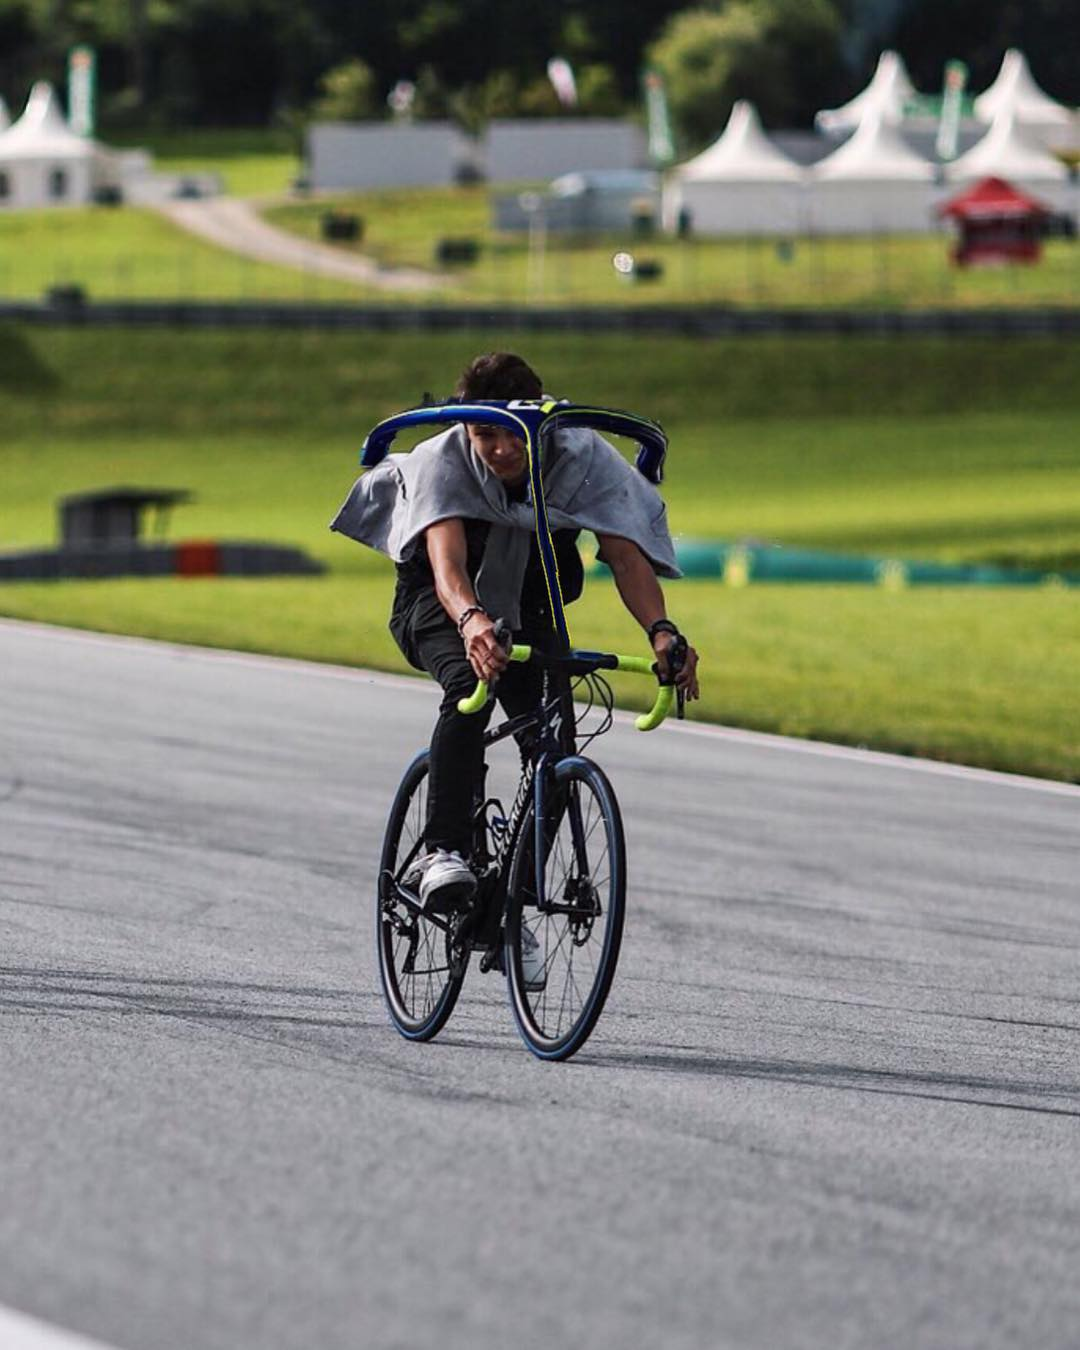 F1 2018 Austrian GP Rd Bull Ring A1 Ring Lando Norris Rides a Specialized Bike Halo Montage